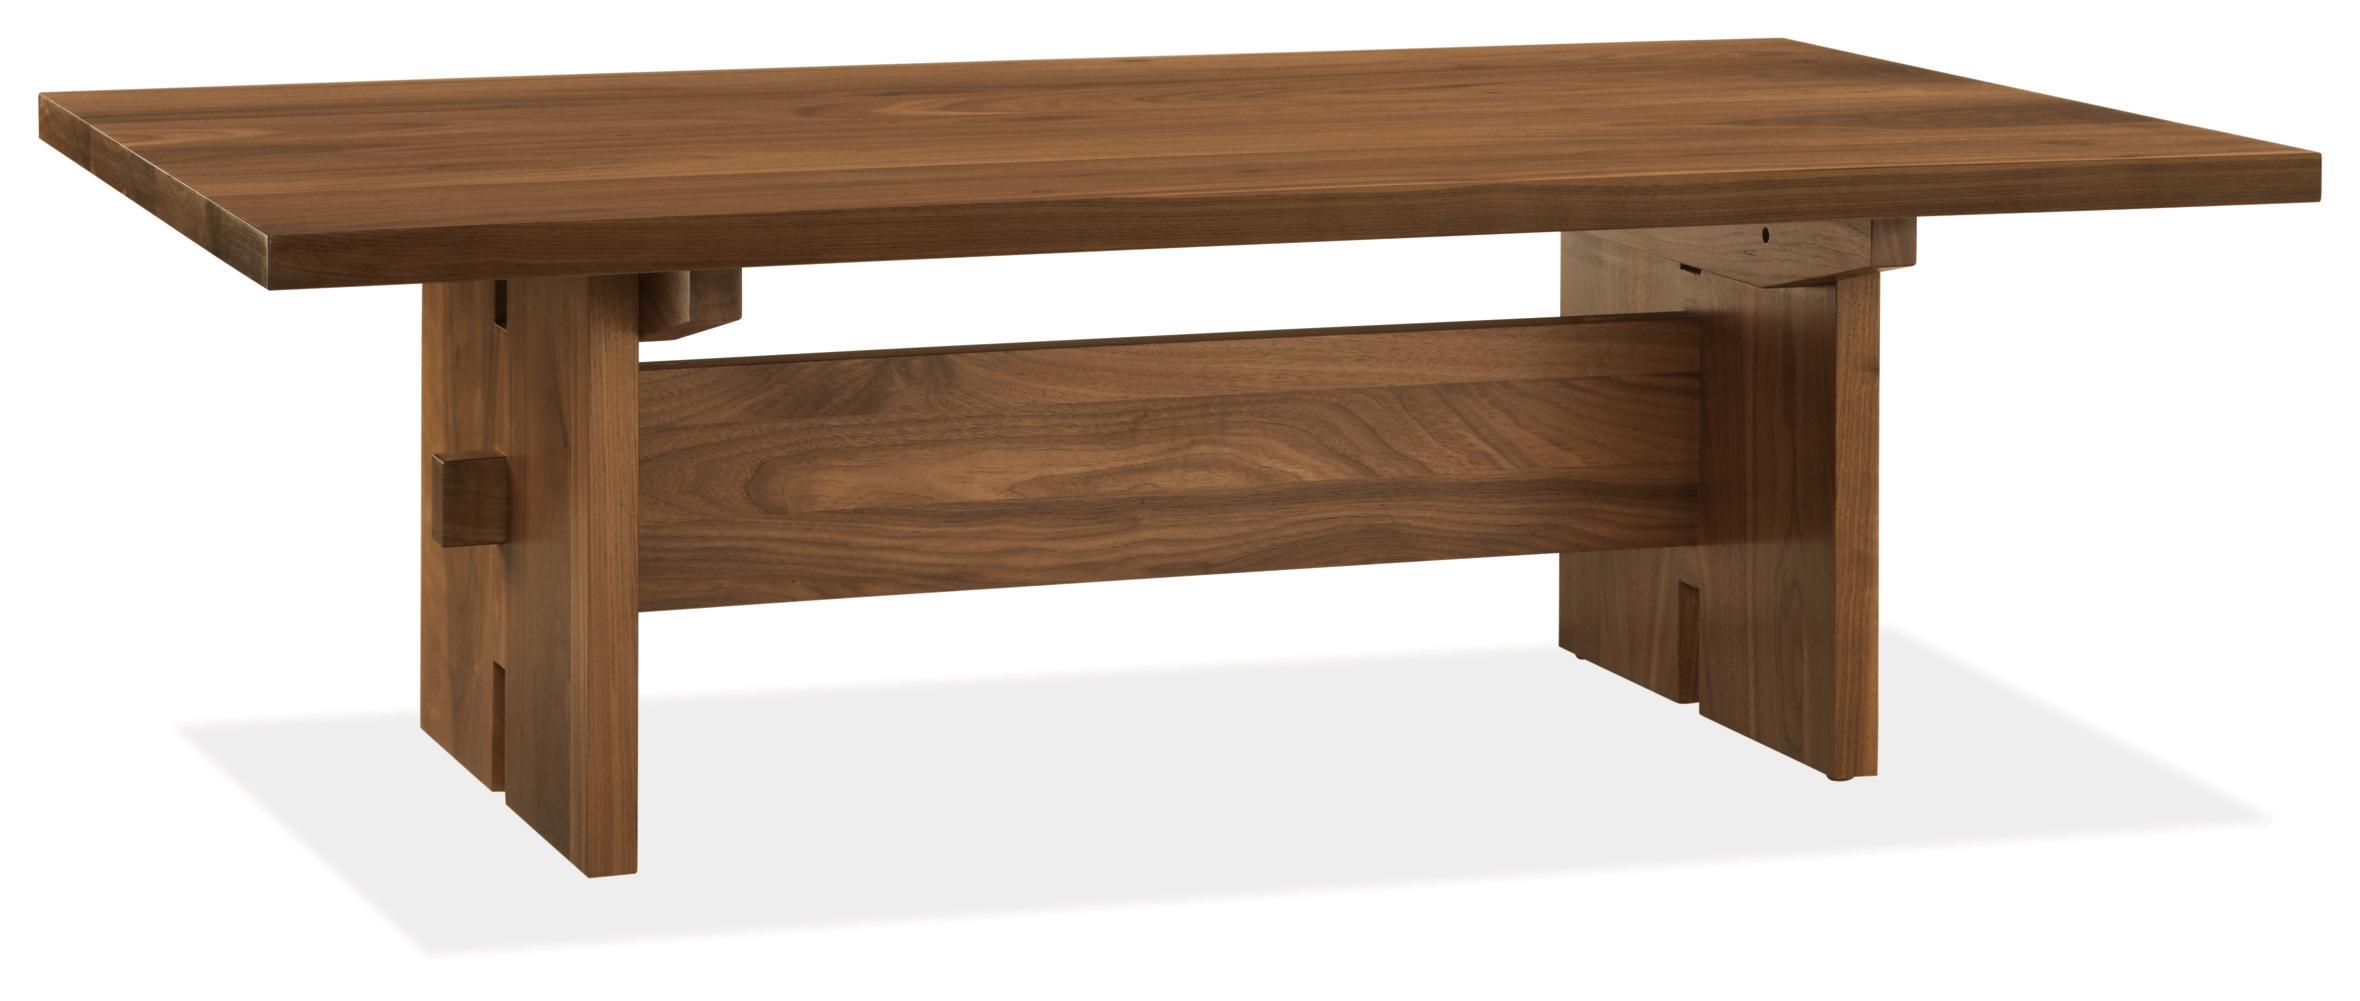 This low-profile walnut table normally goes for{ }$1,299, but it's being discontinued so you can snag it for less this weekend.{ } (Image courtesy of Room & Board)